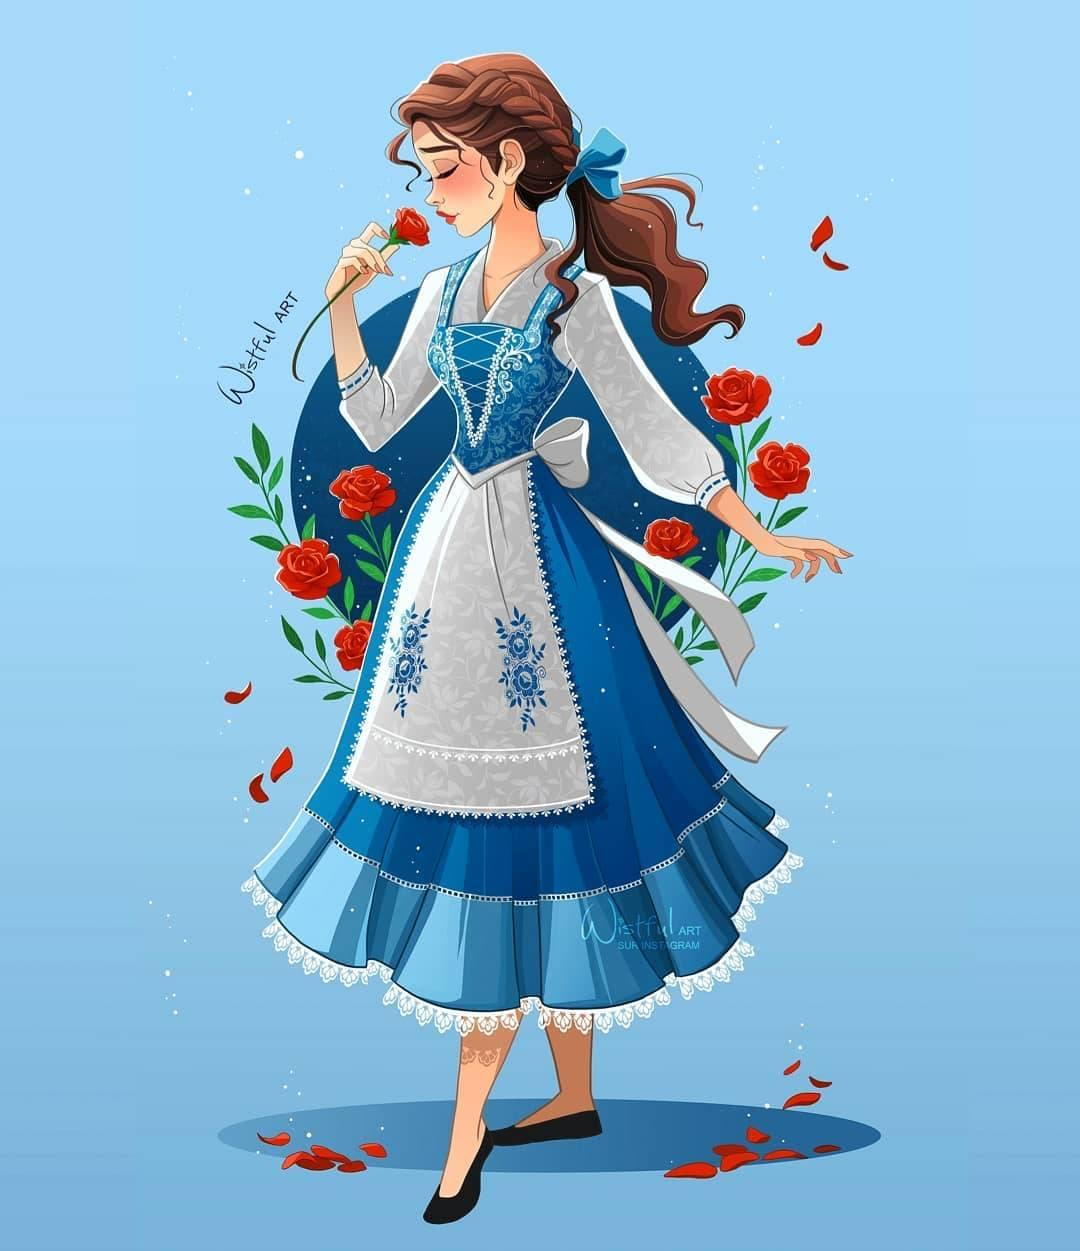 Disney Princess Fan Art Redesigns